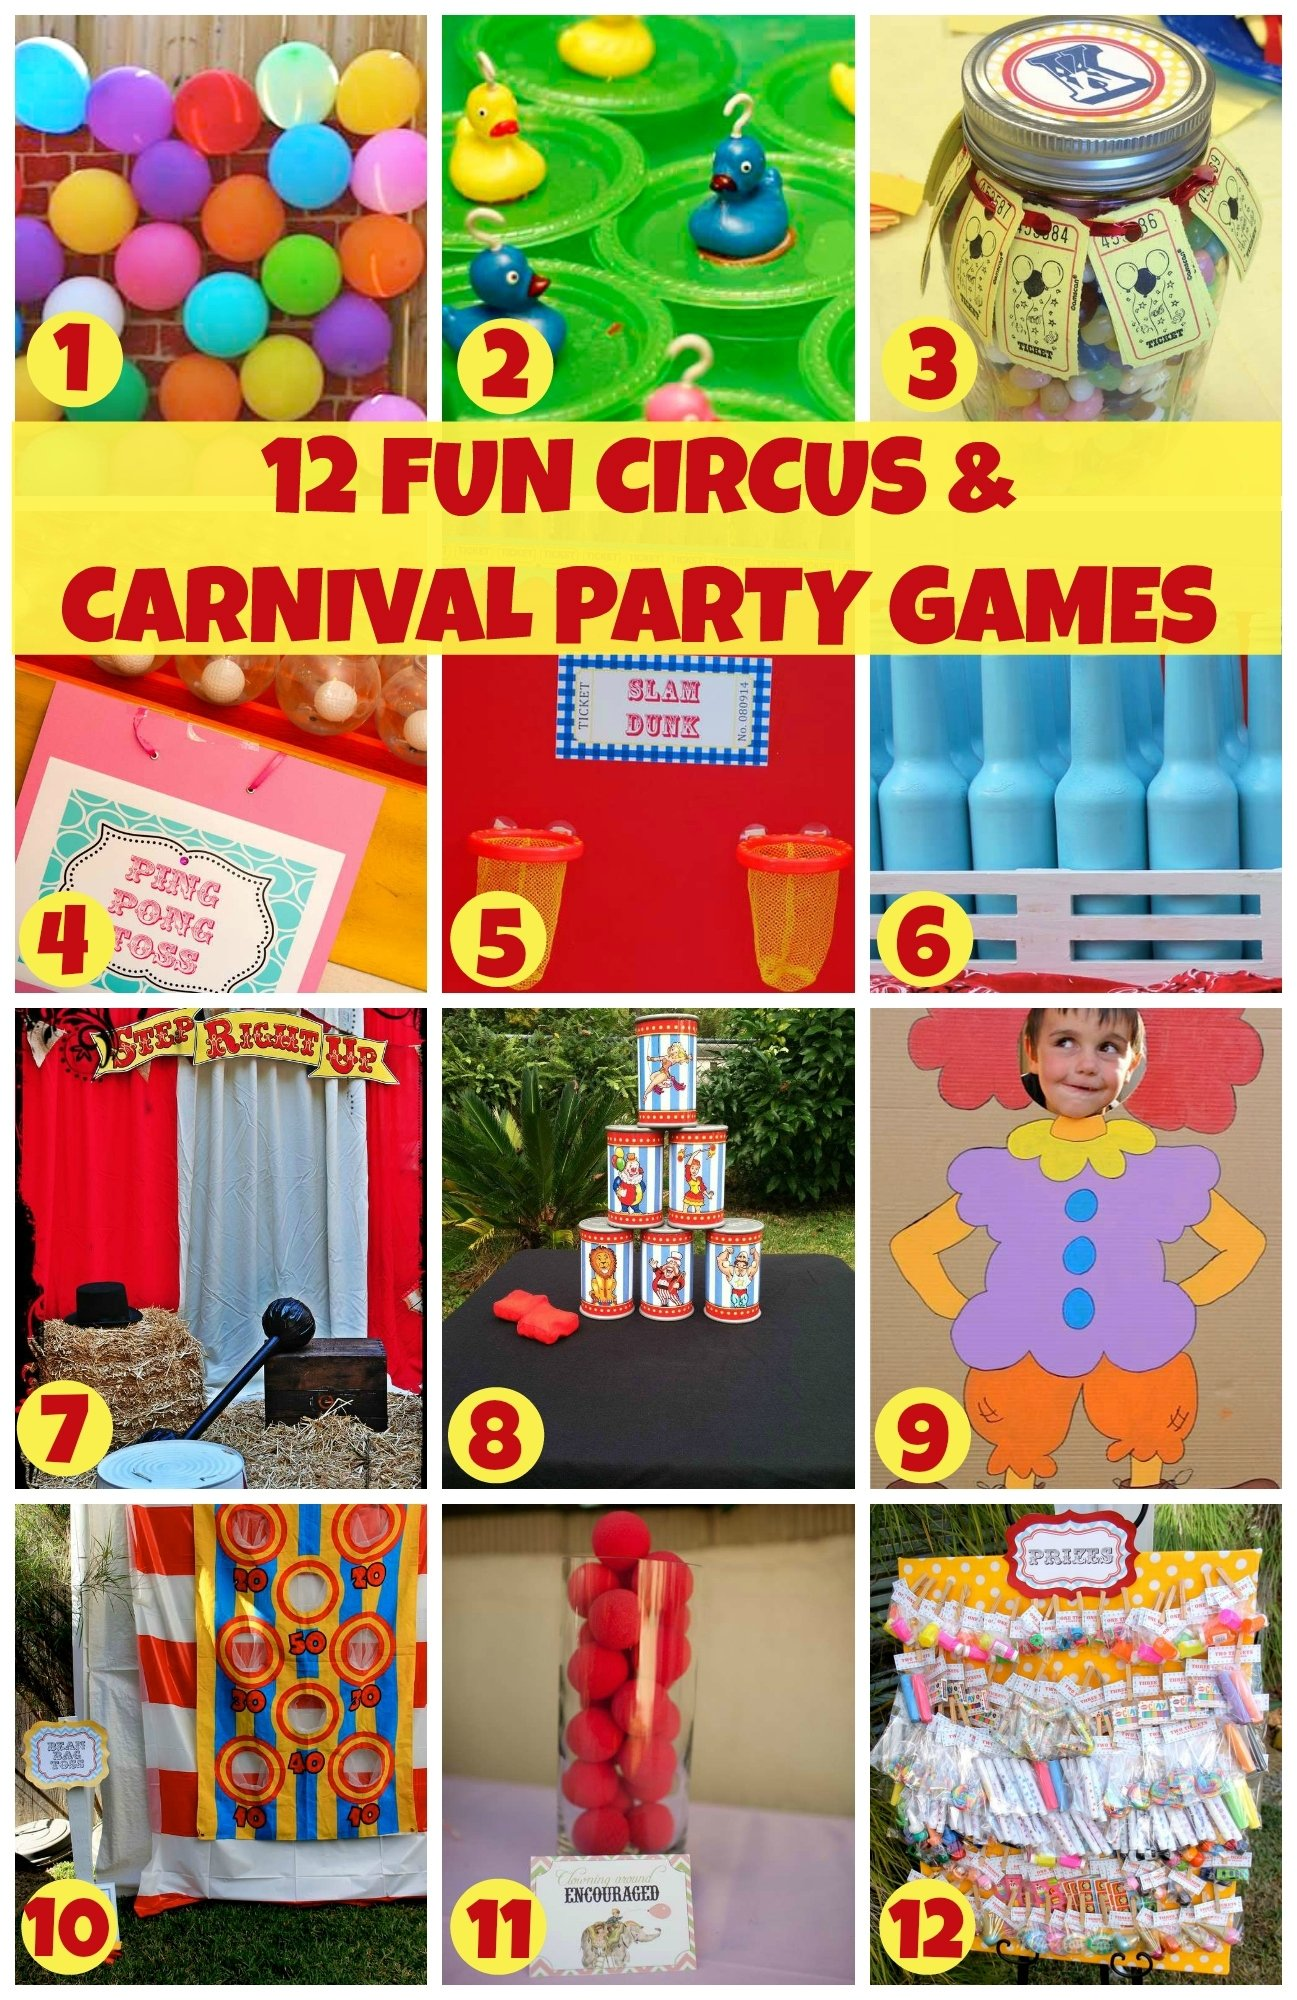 10 Stylish Main Idea Games For Kids pleasant idea game ideas for kids party 12 fun circus carnival games 2020